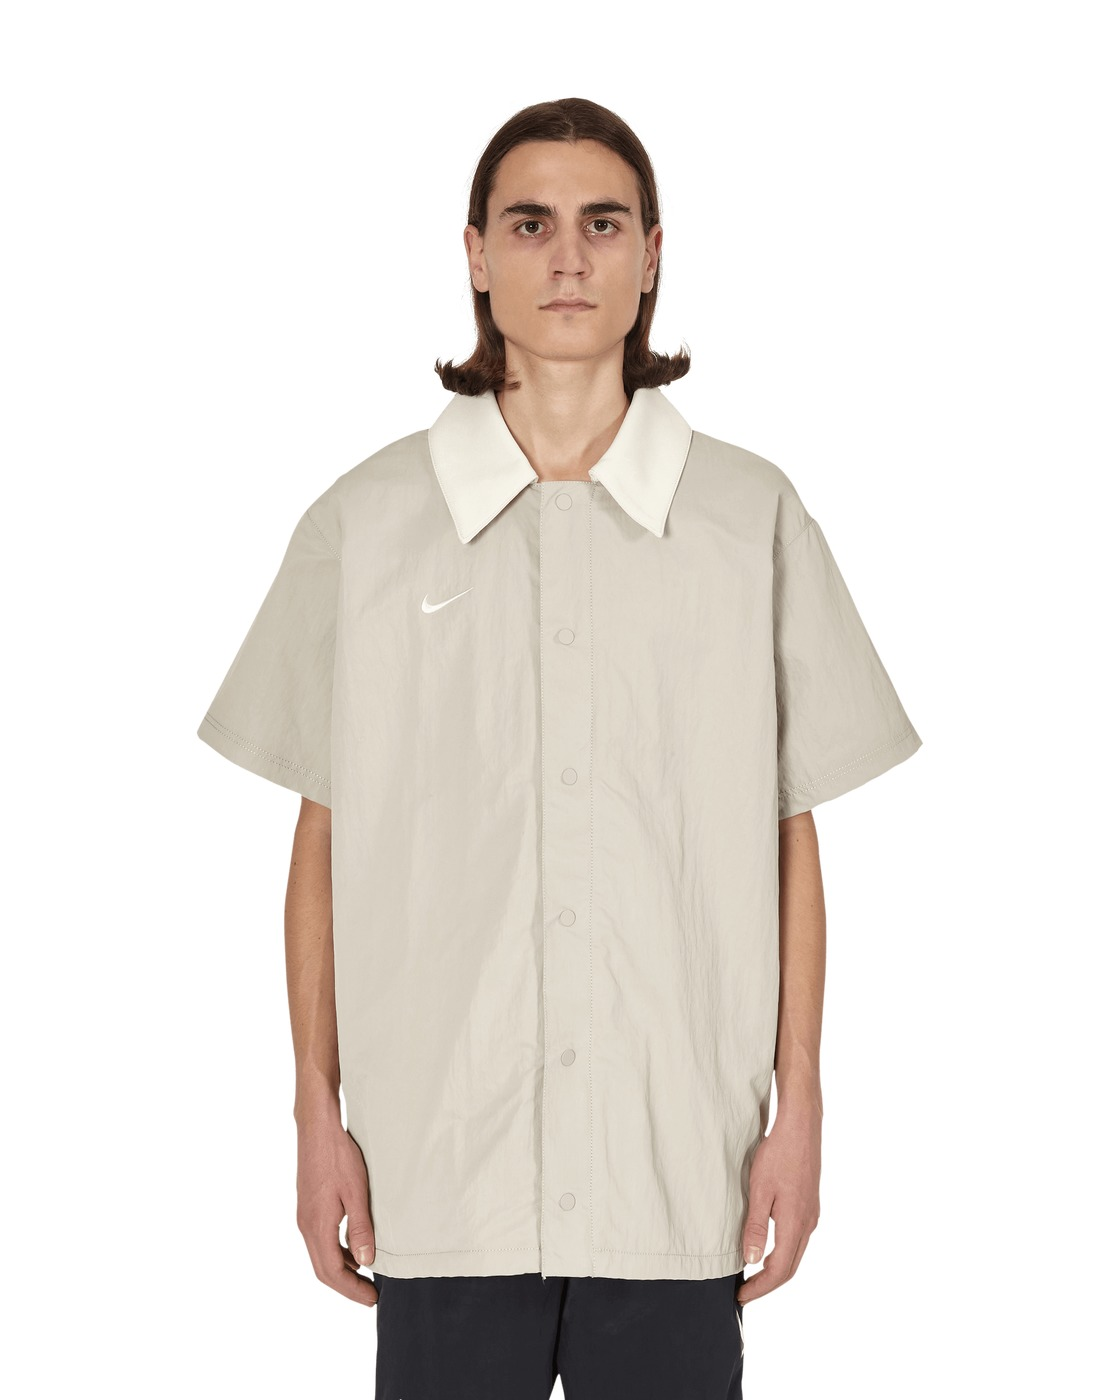 Nike Special Project Jerry Lorenzo Shooting Shirt String